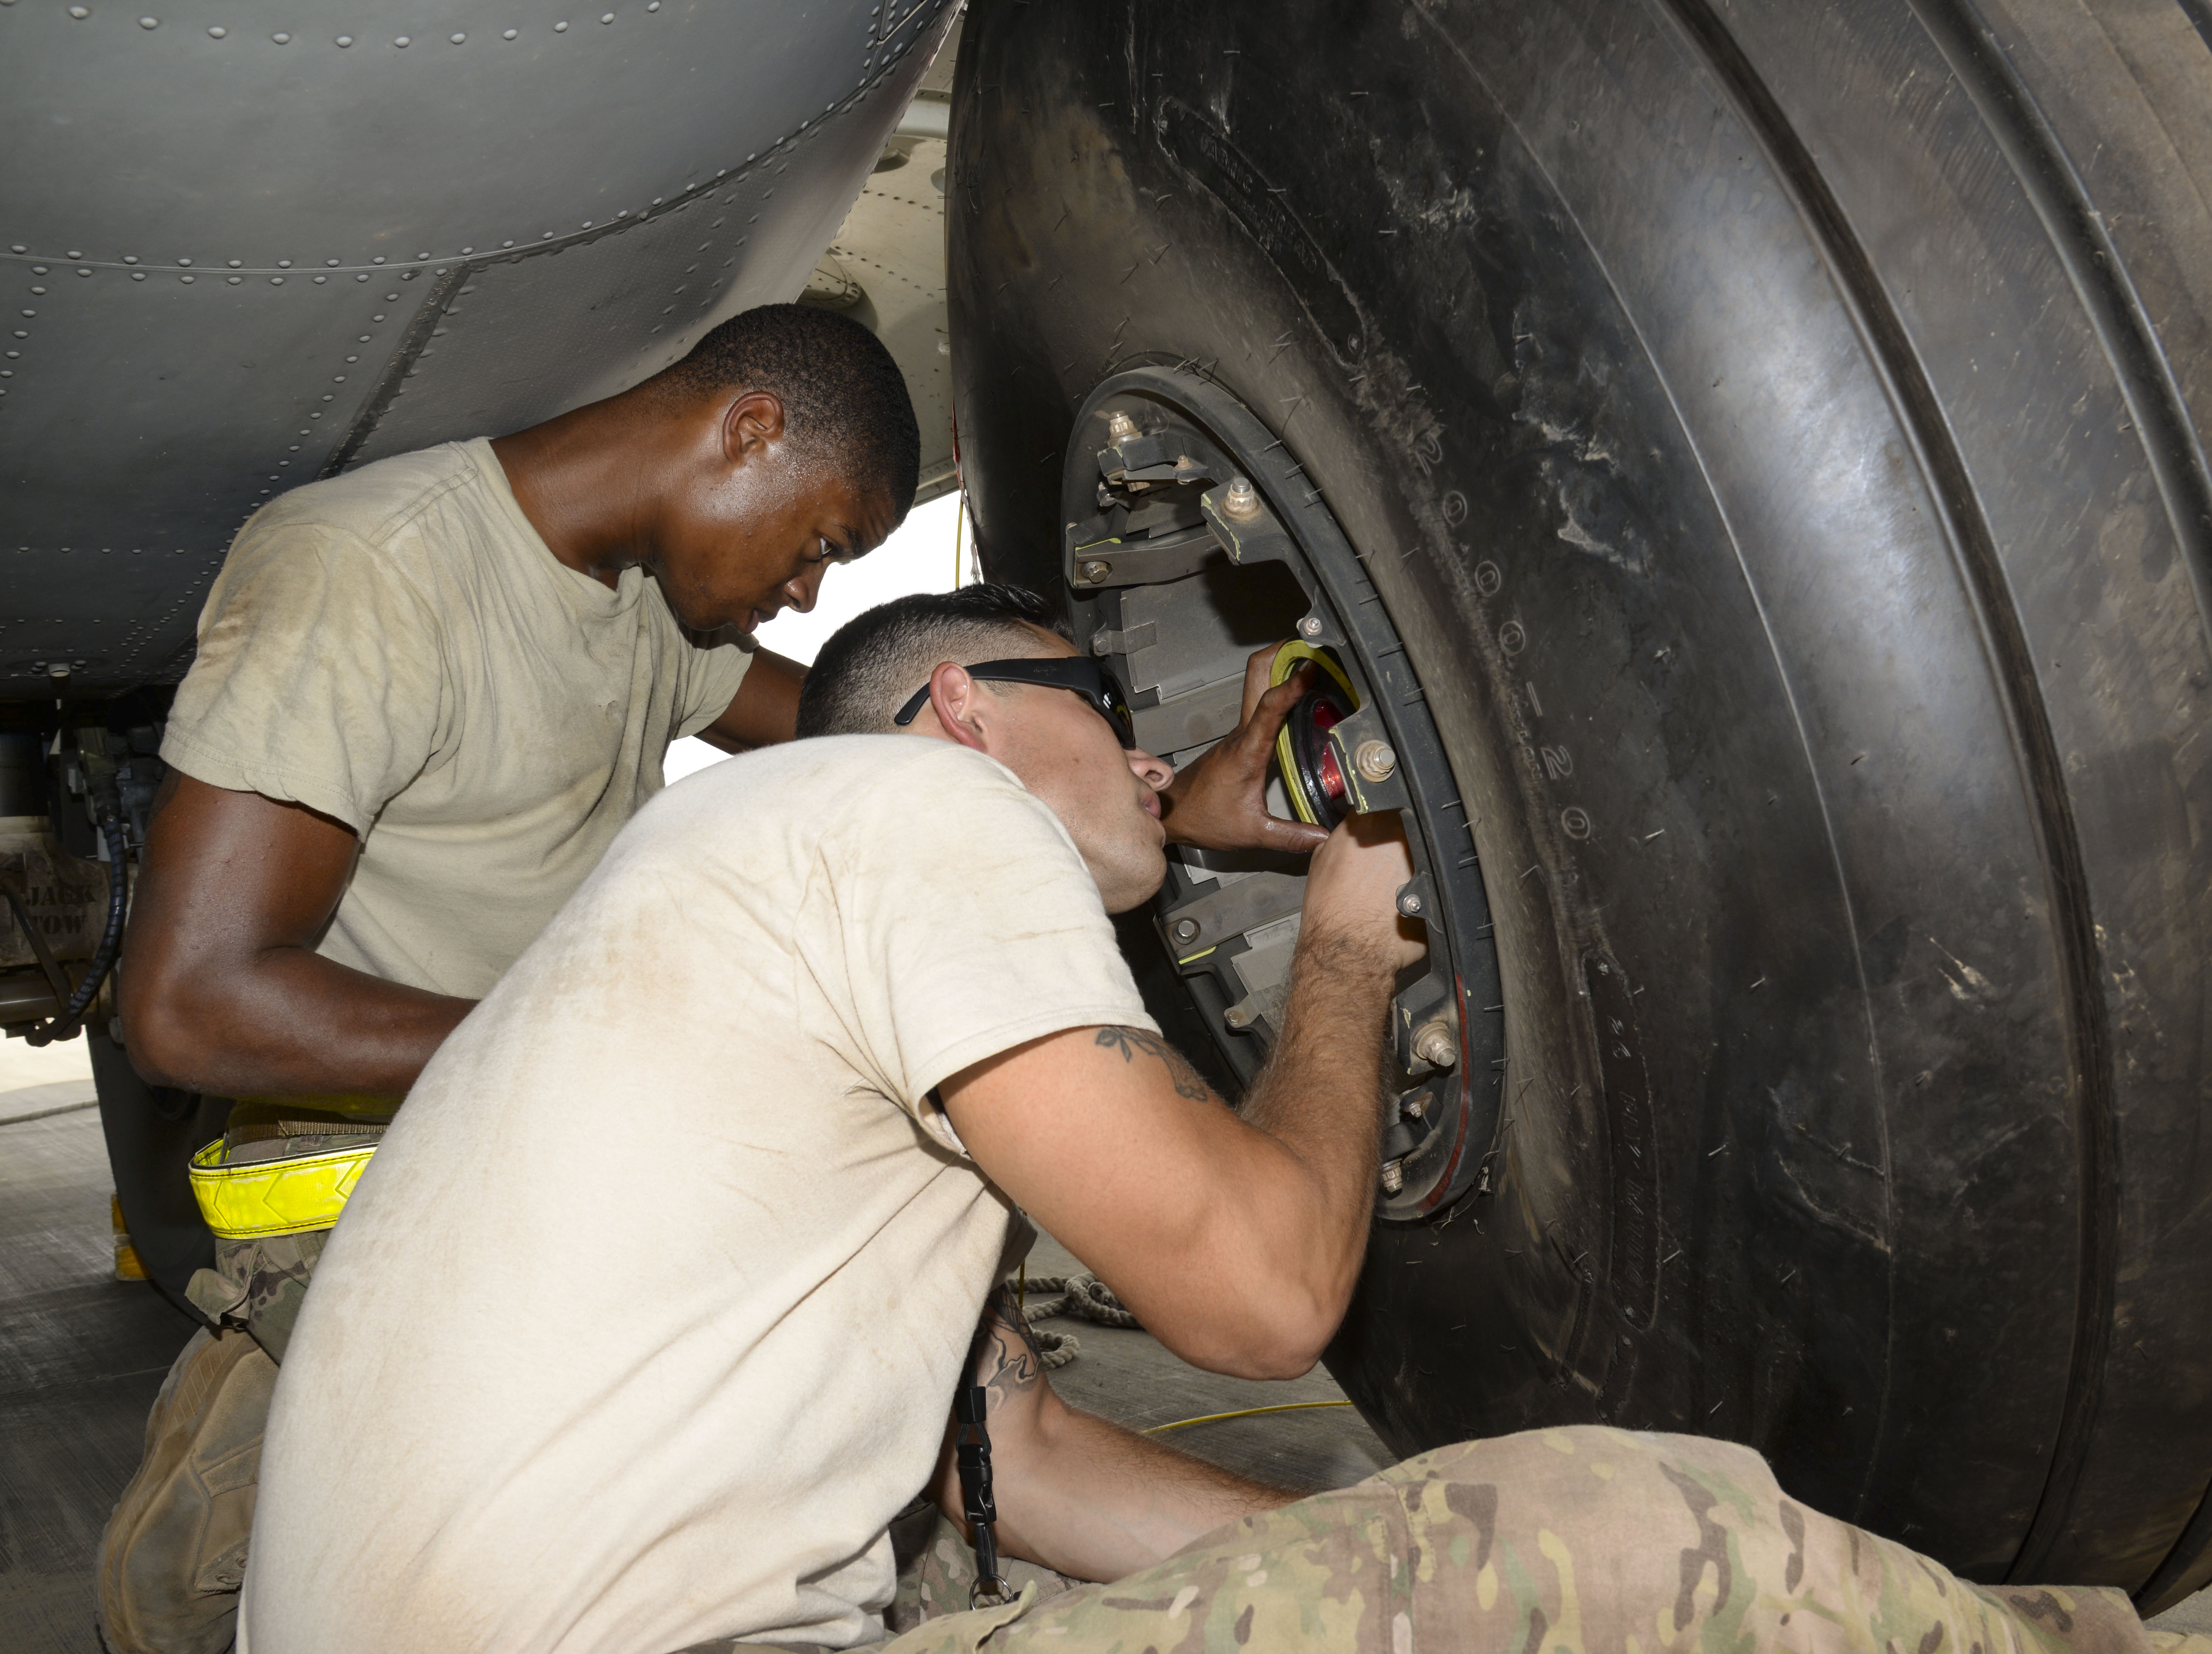 Senior Airman Tavaris Scott, 81st Expeditionary Rescue Squadron crew chief, left, and Staff Sgt. Michael Patterson, 81st ERQS aerospace propulsion craftsman, team up to change a tire on a C-130J Hercules main landing gear at Camp Lemonnier, Djibouti, July 18, 2016. The C-130J underwent routine maintenance to continue the mission of personnel recovery and protect and defend United States interests in Eastern Africa. (U.S. Air Force photo by Staff Sgt. Benjamin Raughton)